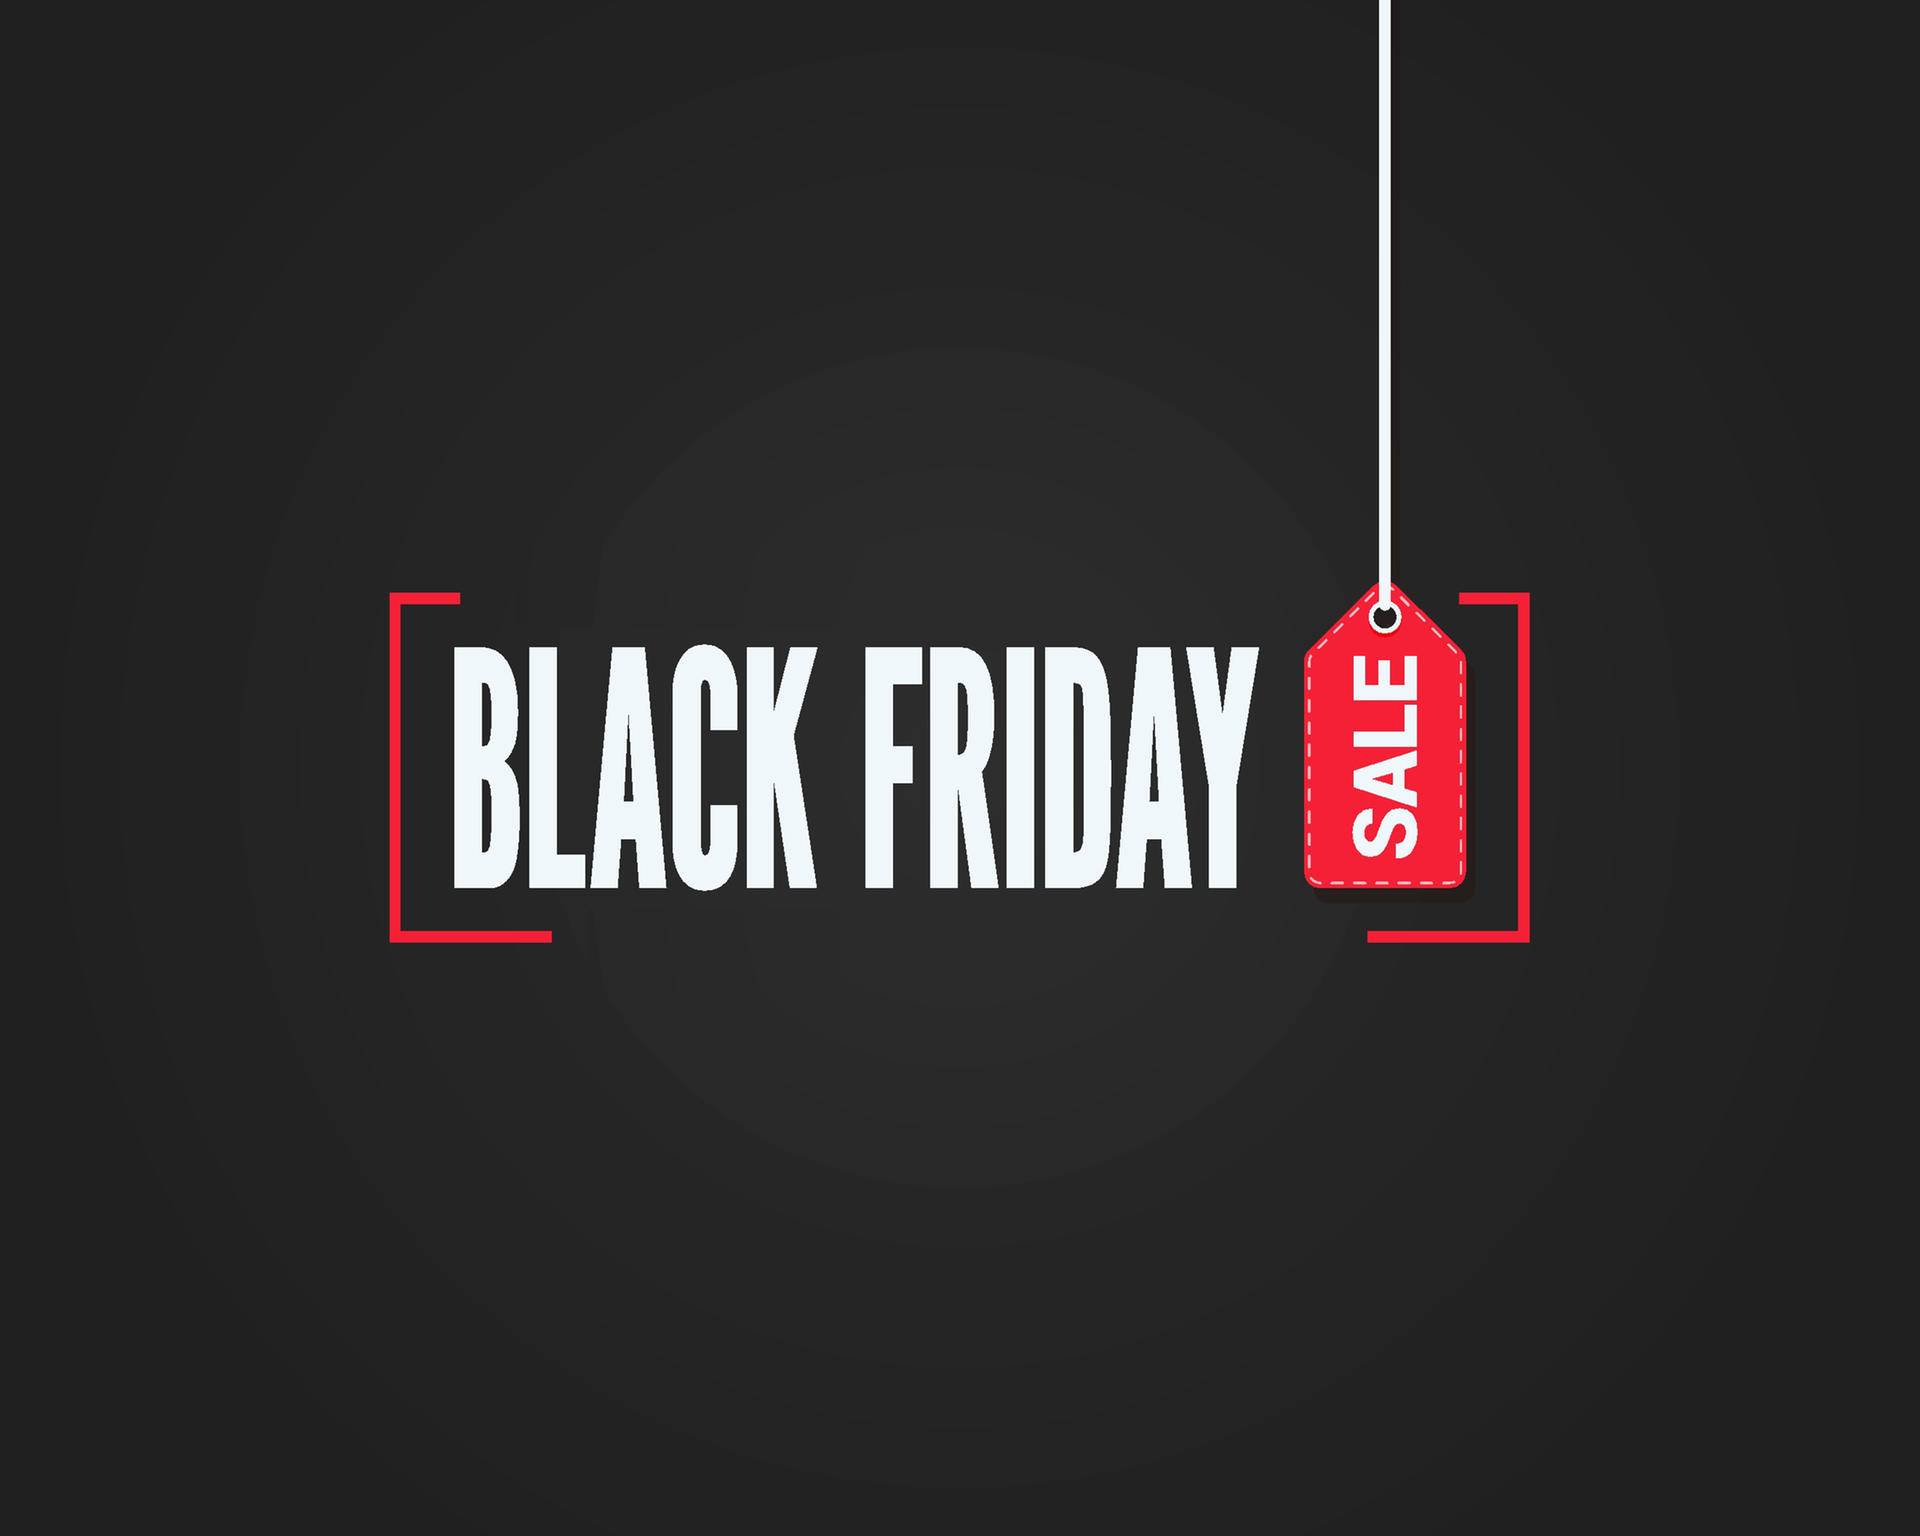 Black Freday Black Friday Cyber Monday 2019 Bei Amazon